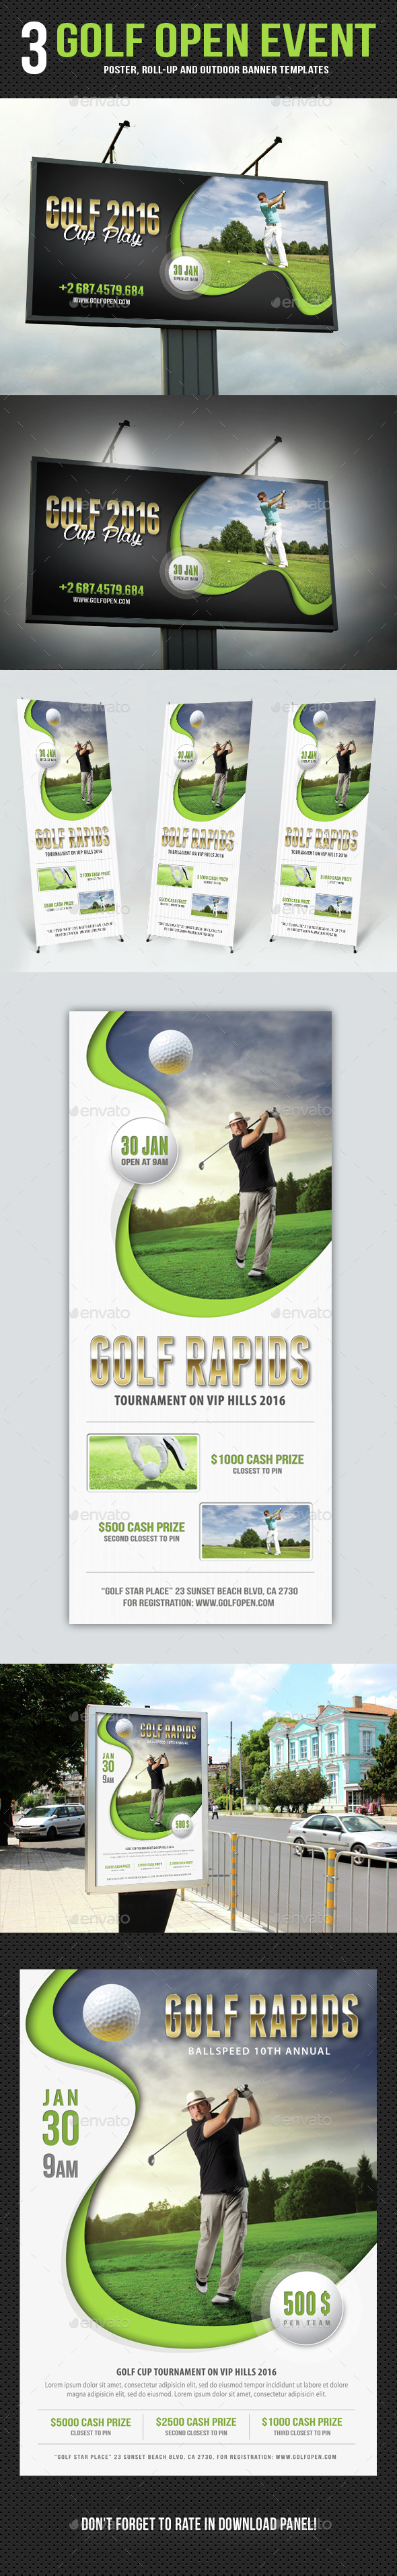 3 Golf Event Poster And Banners Bundle - Signage Print Templates